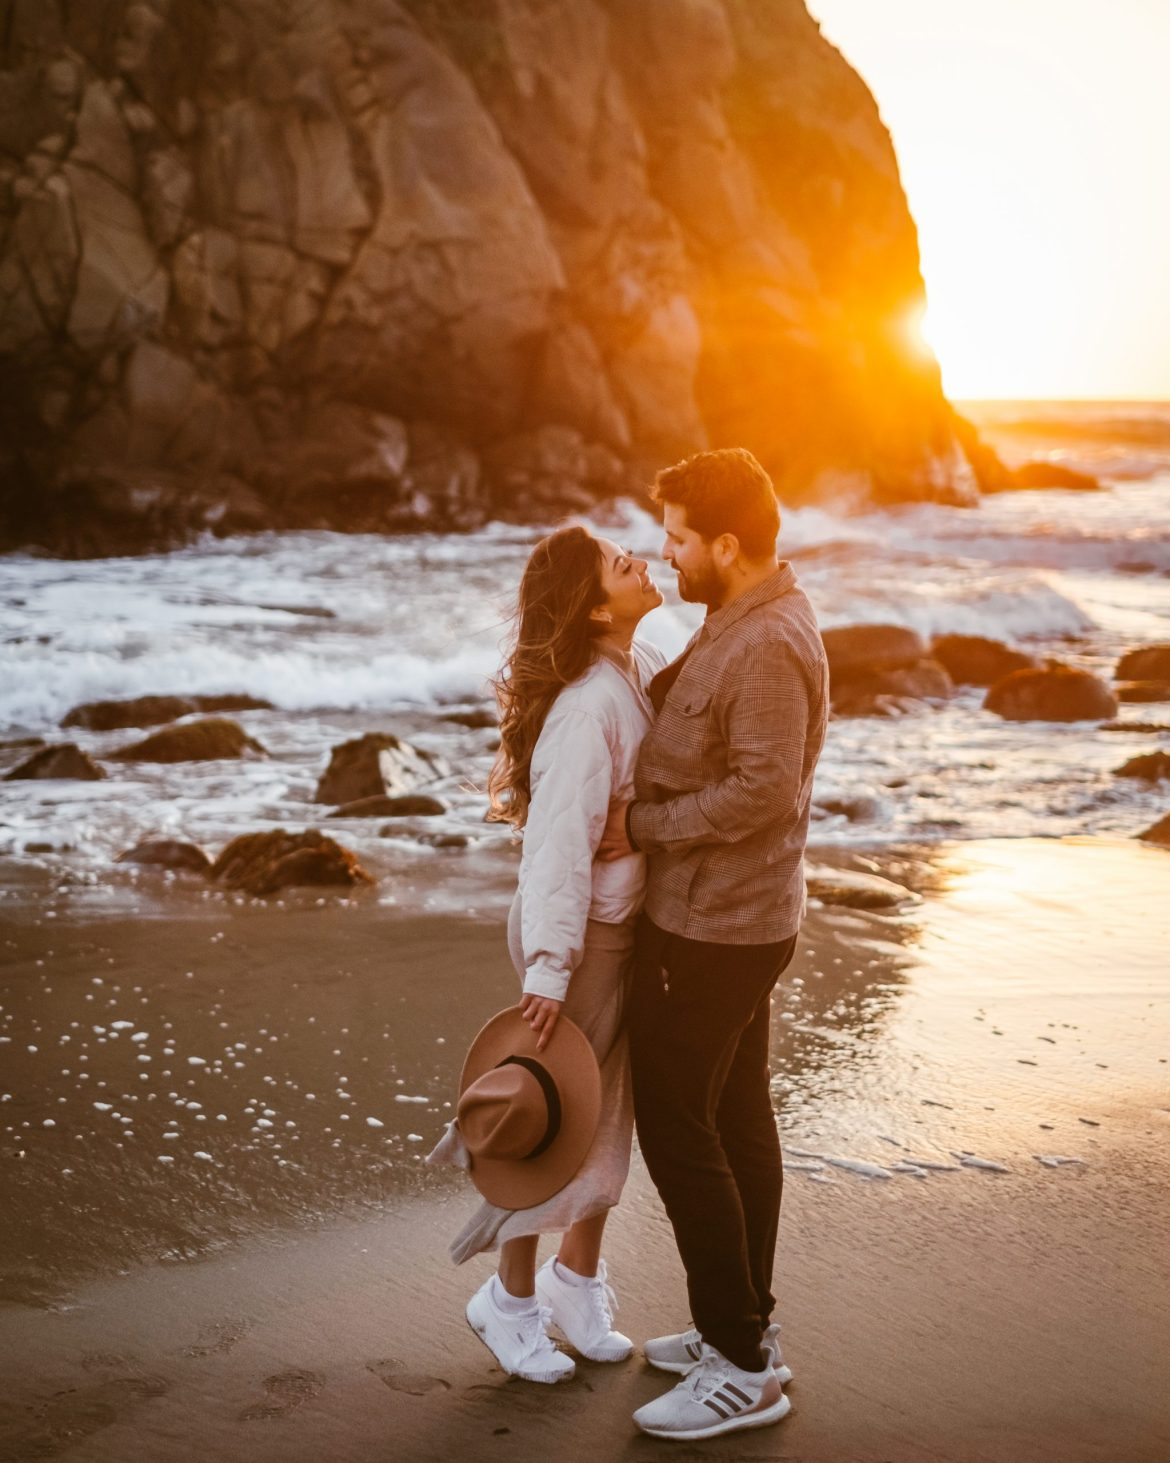 Golden Moments on a Golden Coast - sunset photoshoot, Big Sur photoshoot, Big Sur outfit, creative photography, photo ideas, California, outfit ideas, beach outfit, engagement photography